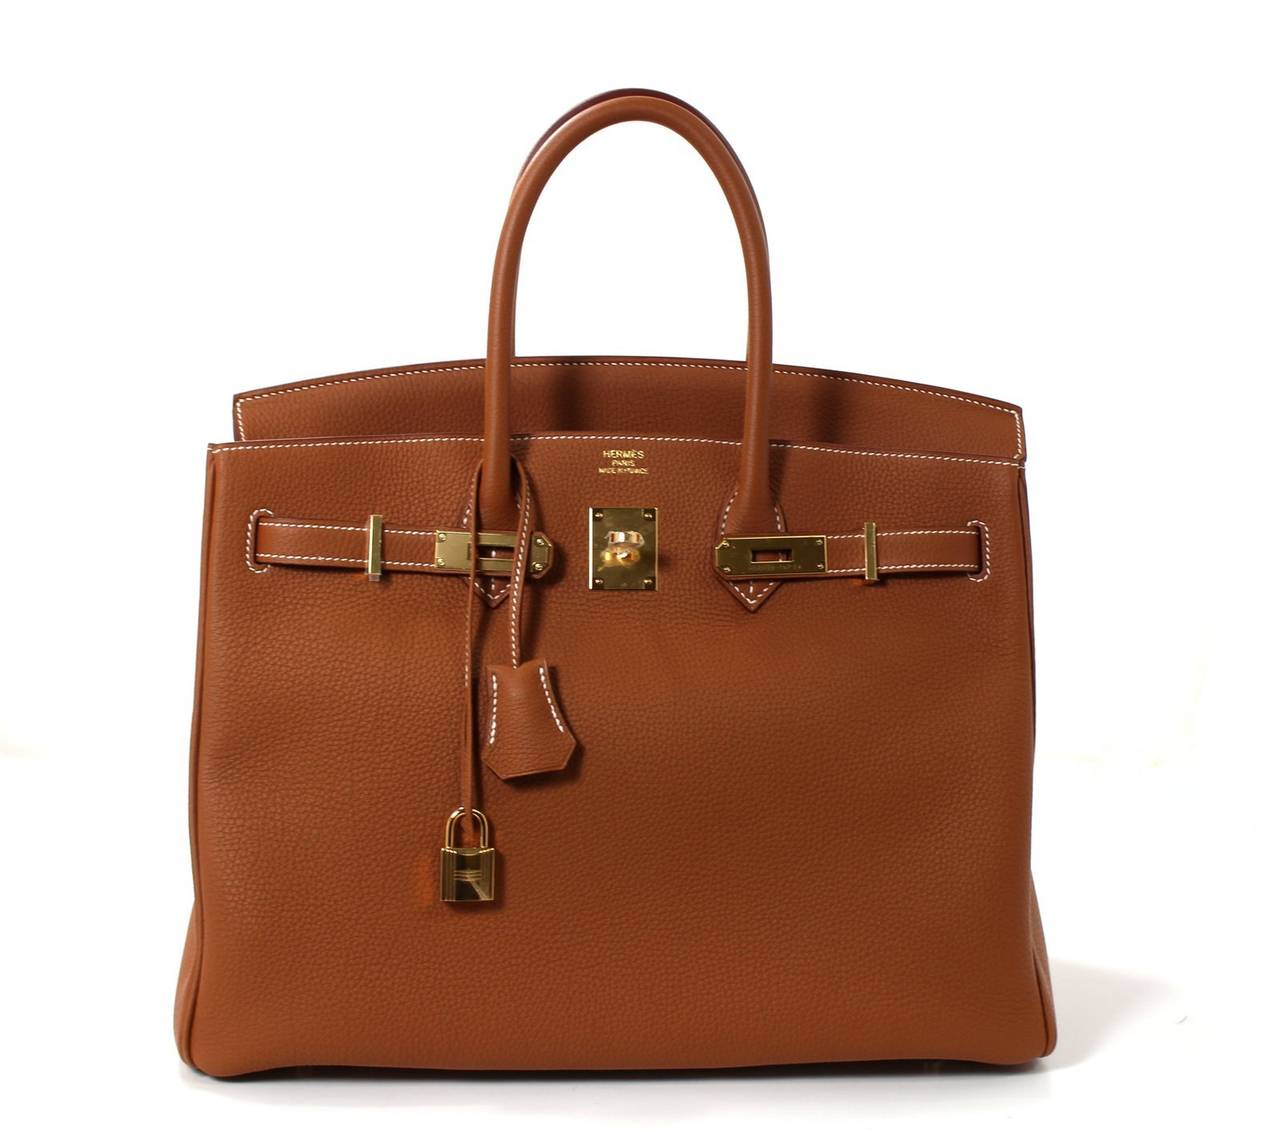 Hermes Classic Gold 35 cm Birkin Bag- Togo with GHW 7